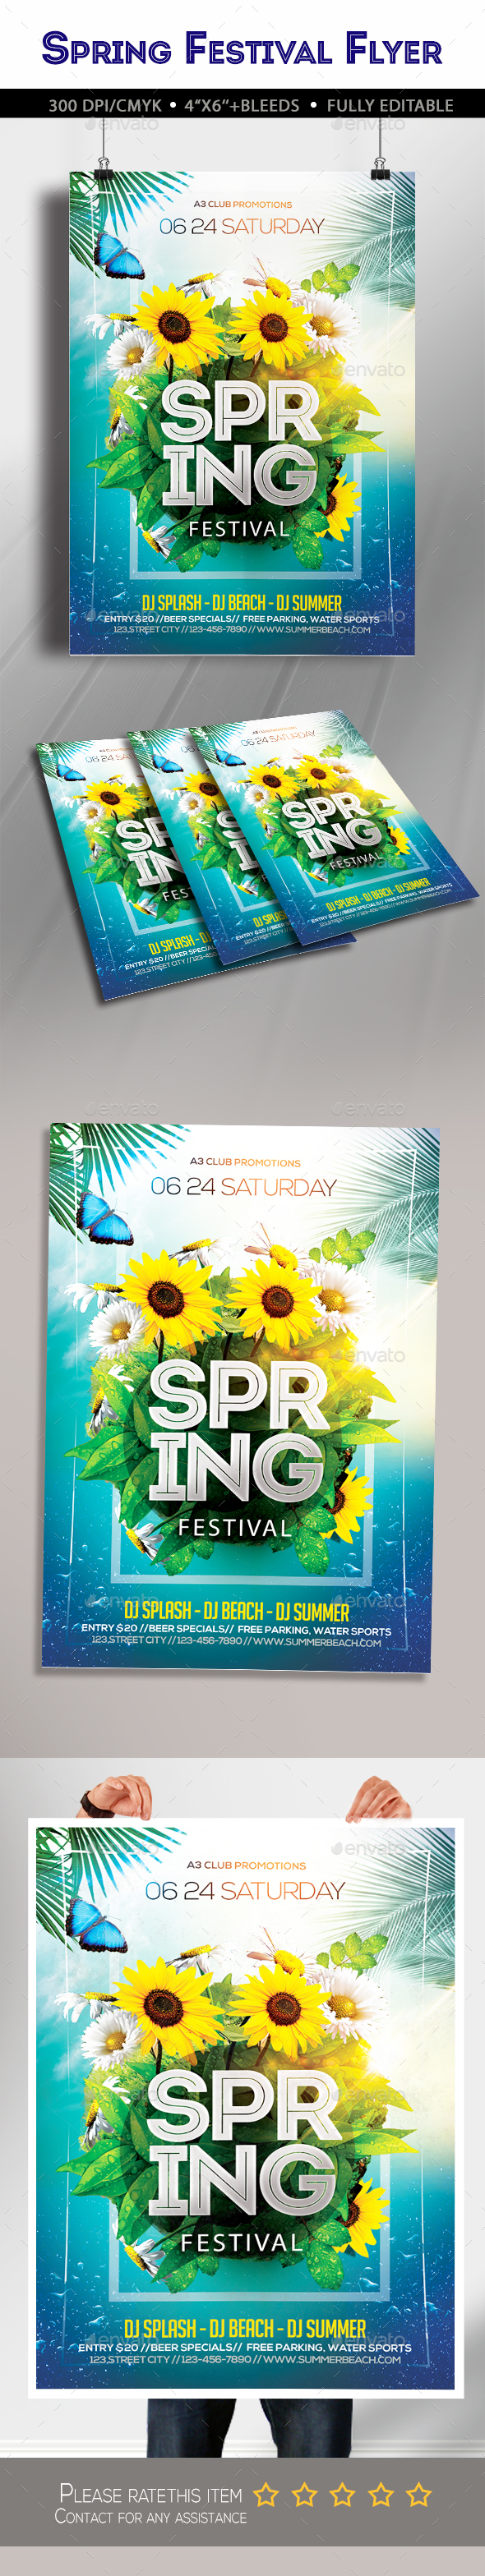 Spring Festval Flyer - Clubs & Parties Events